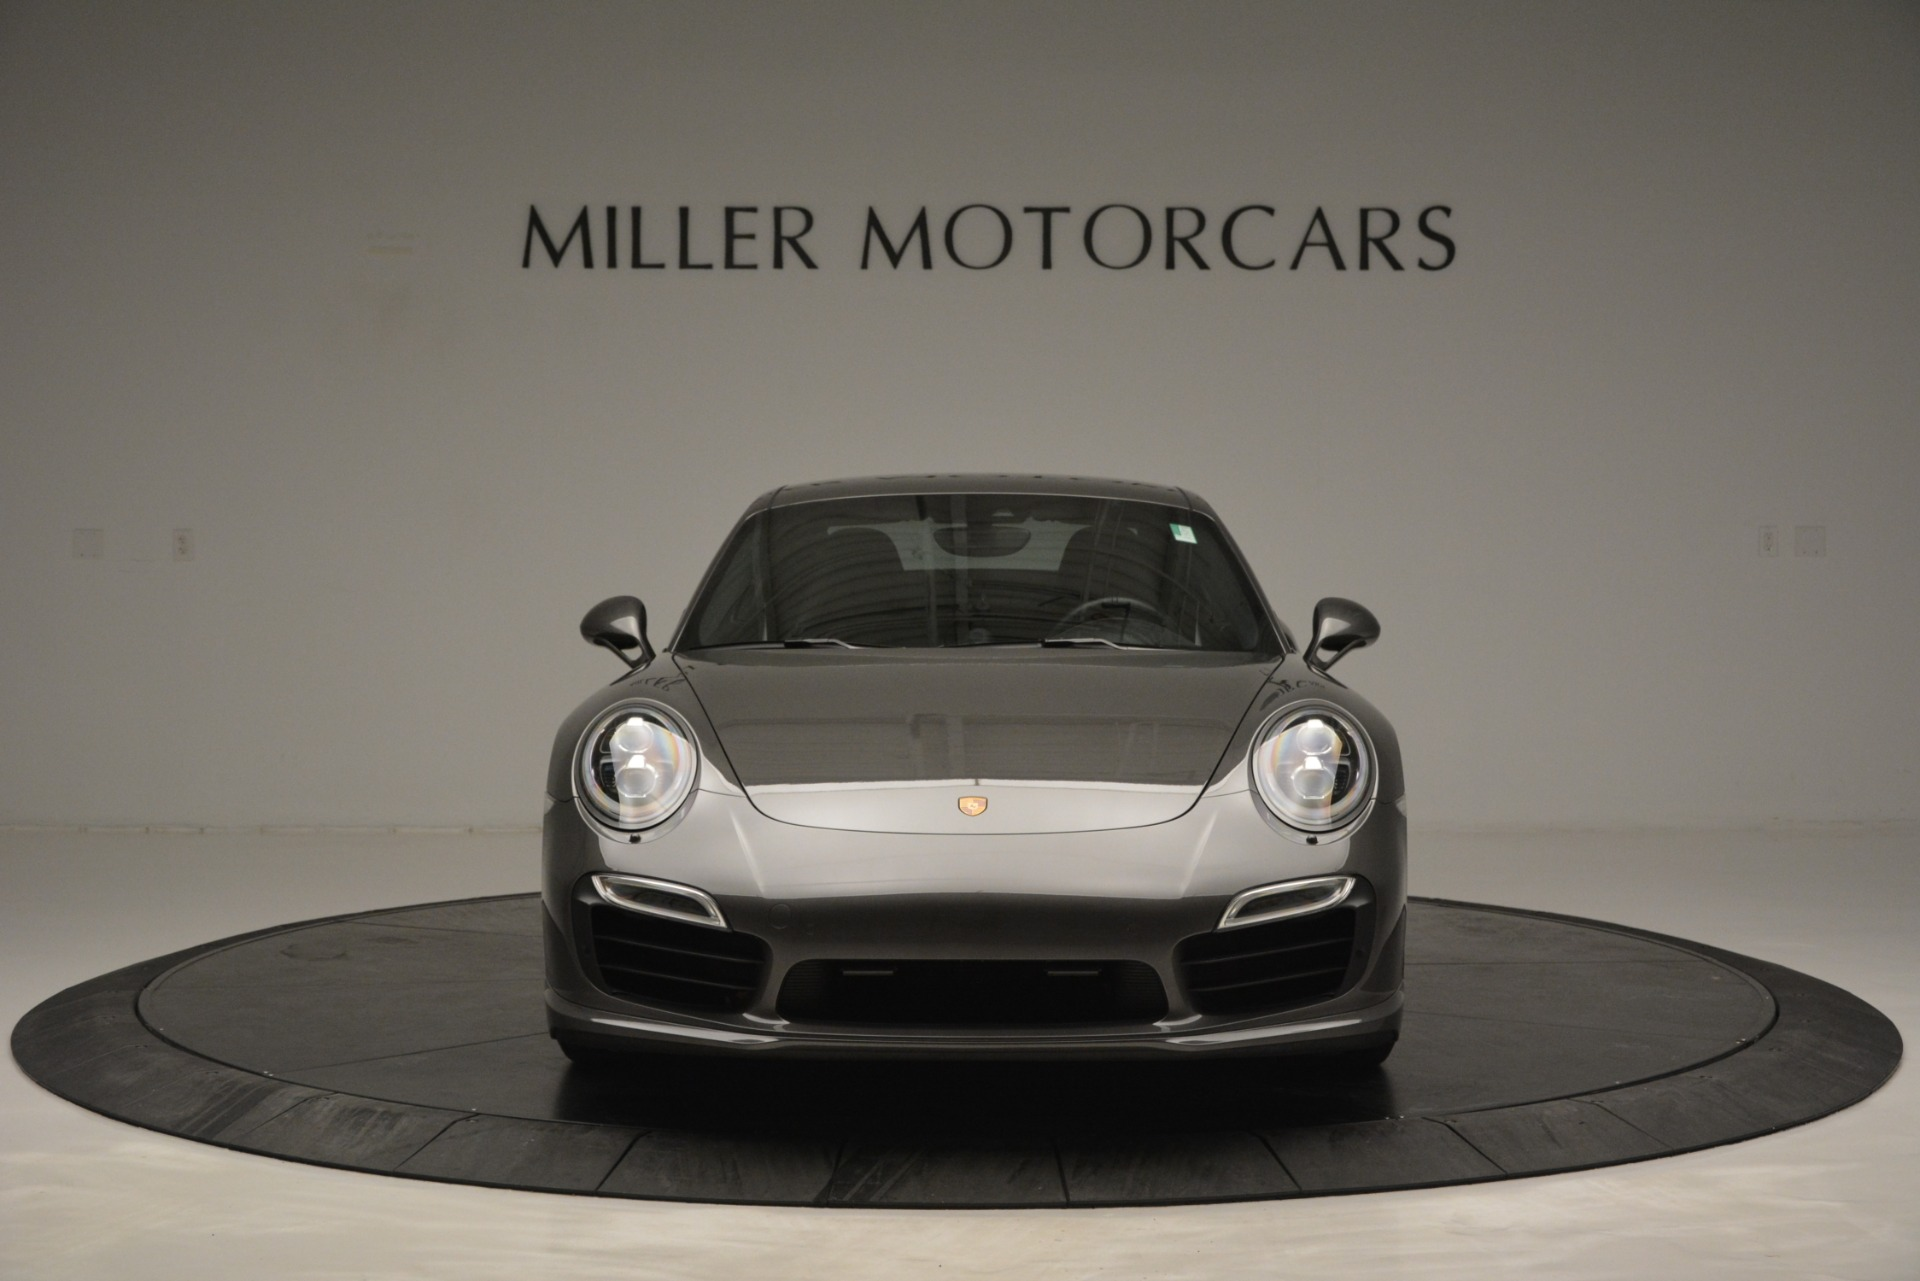 Used 2015 Porsche 911 Turbo S For Sale In Greenwich, CT 2923_p12